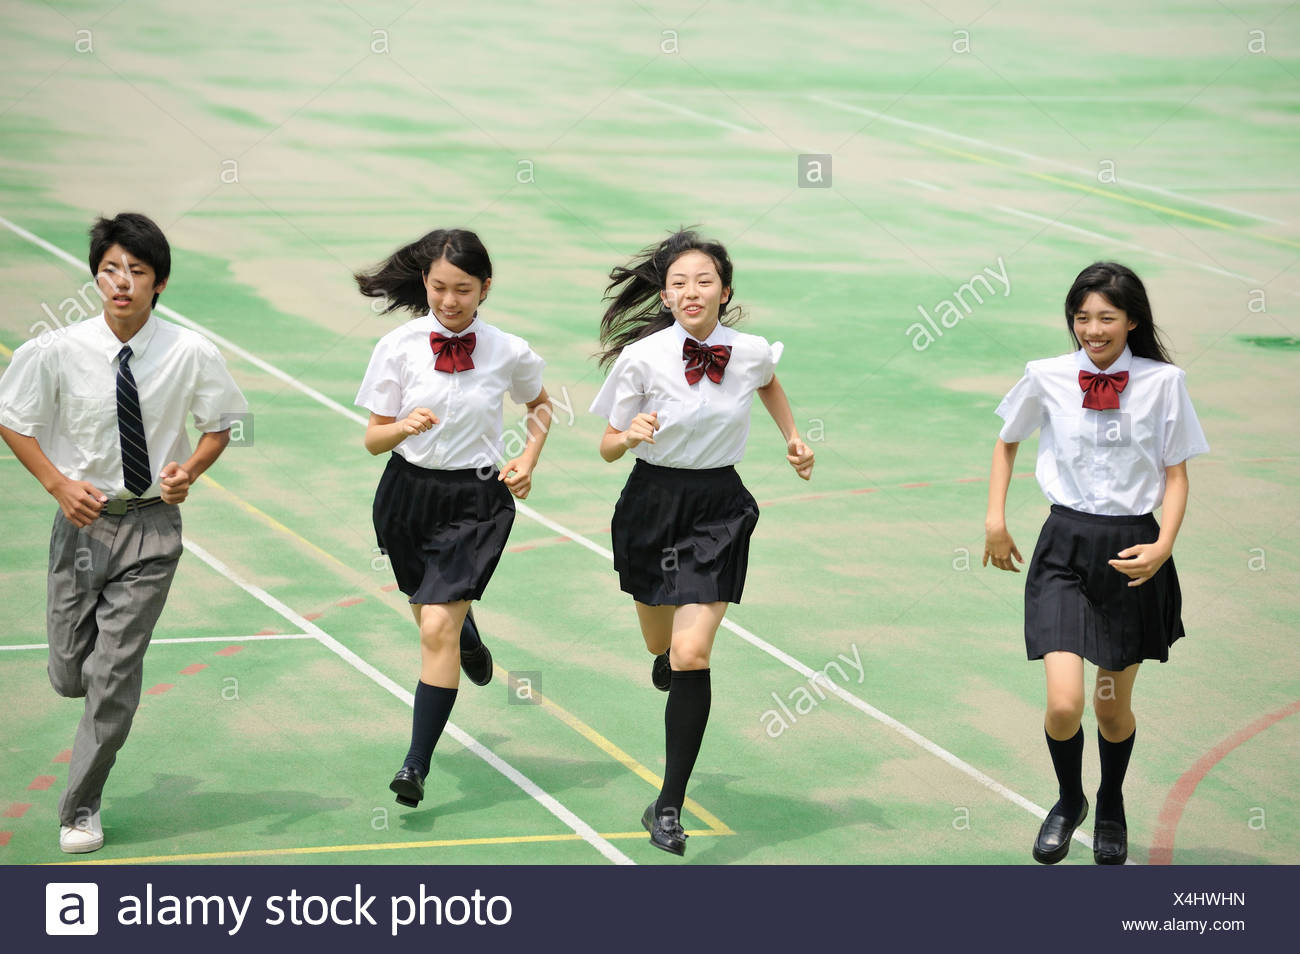 High School Students Running in the Schoolyard - Stock Image